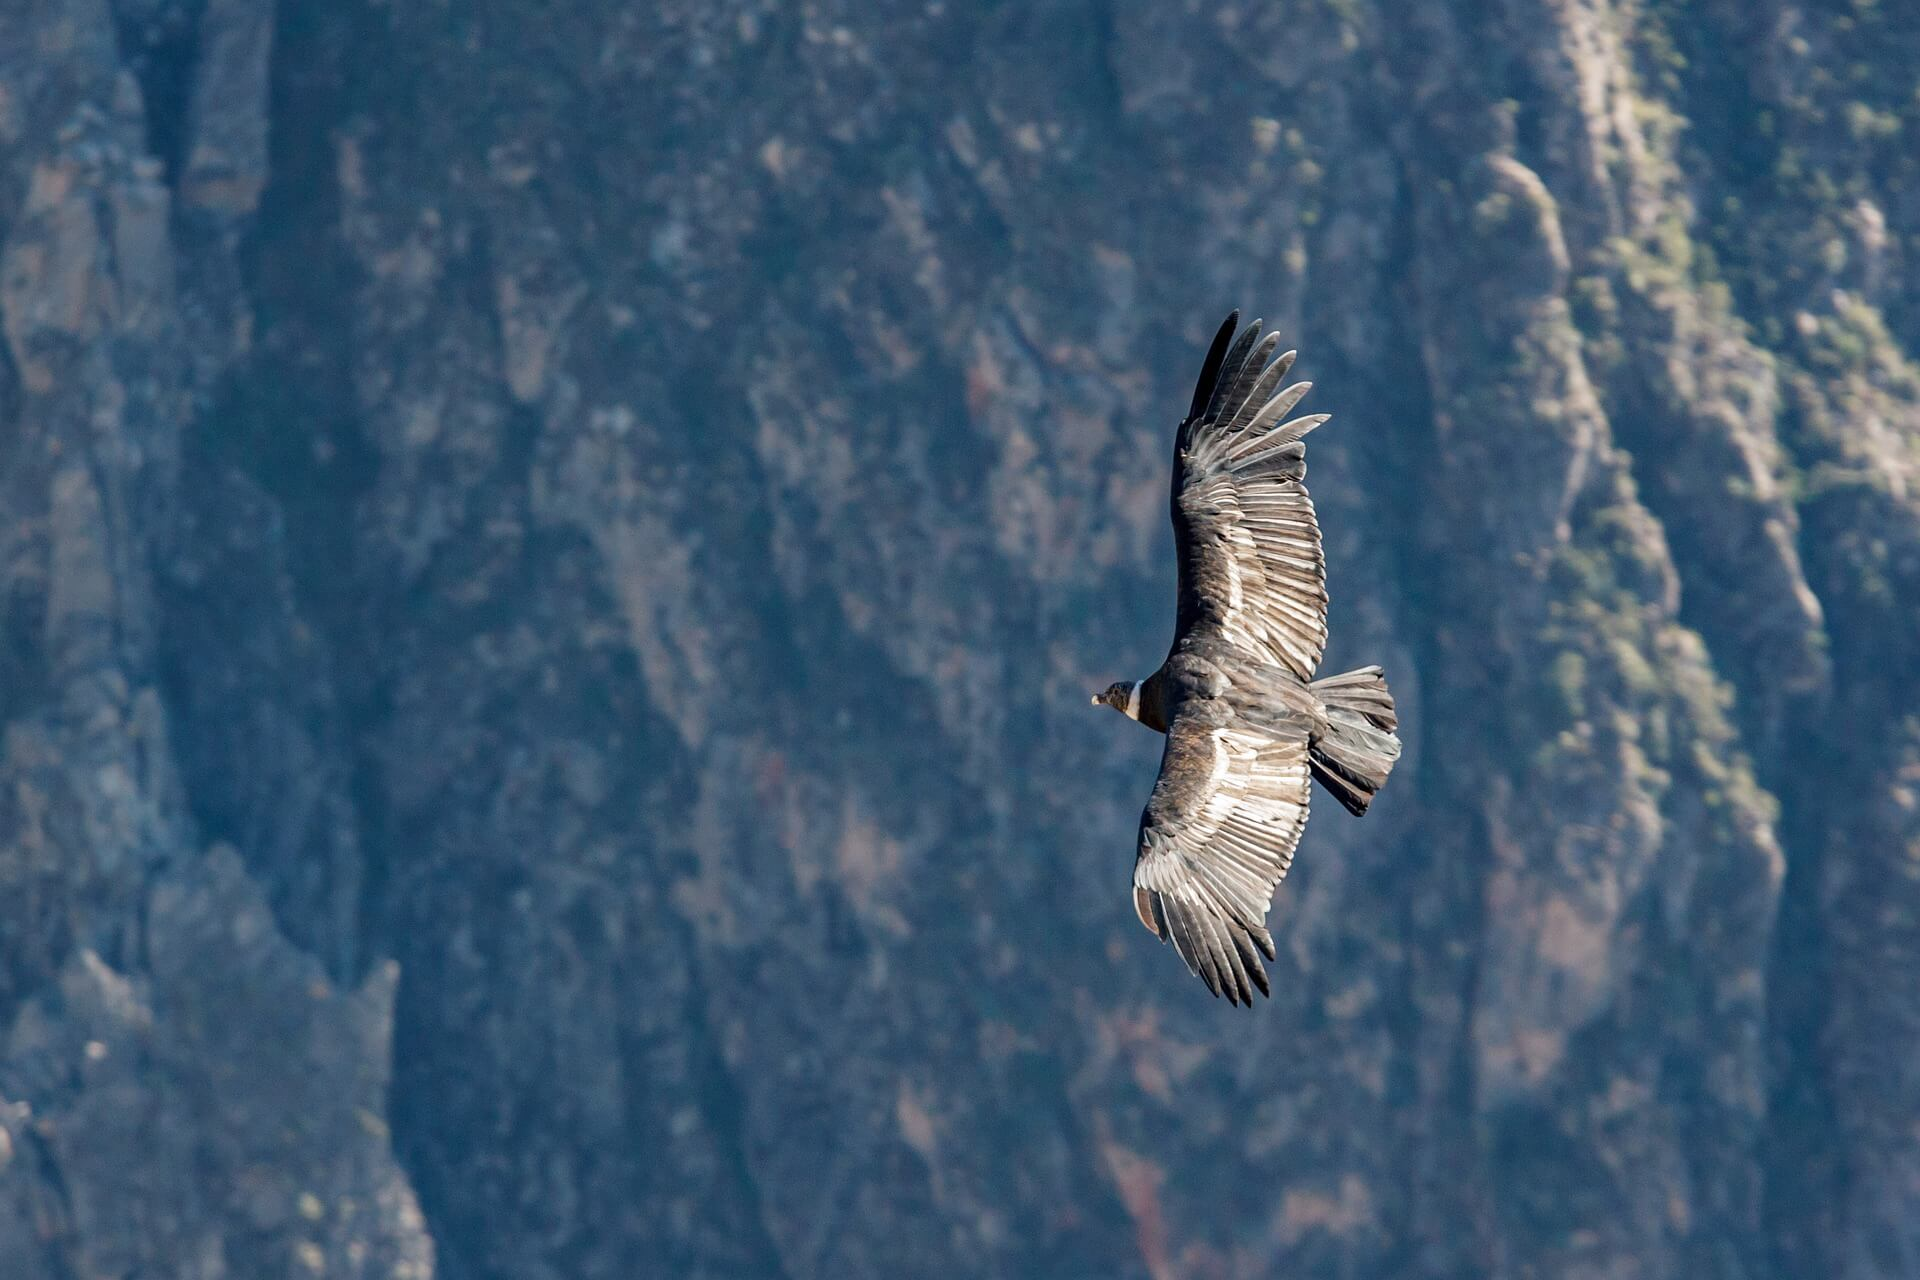 A condor flying in Peru